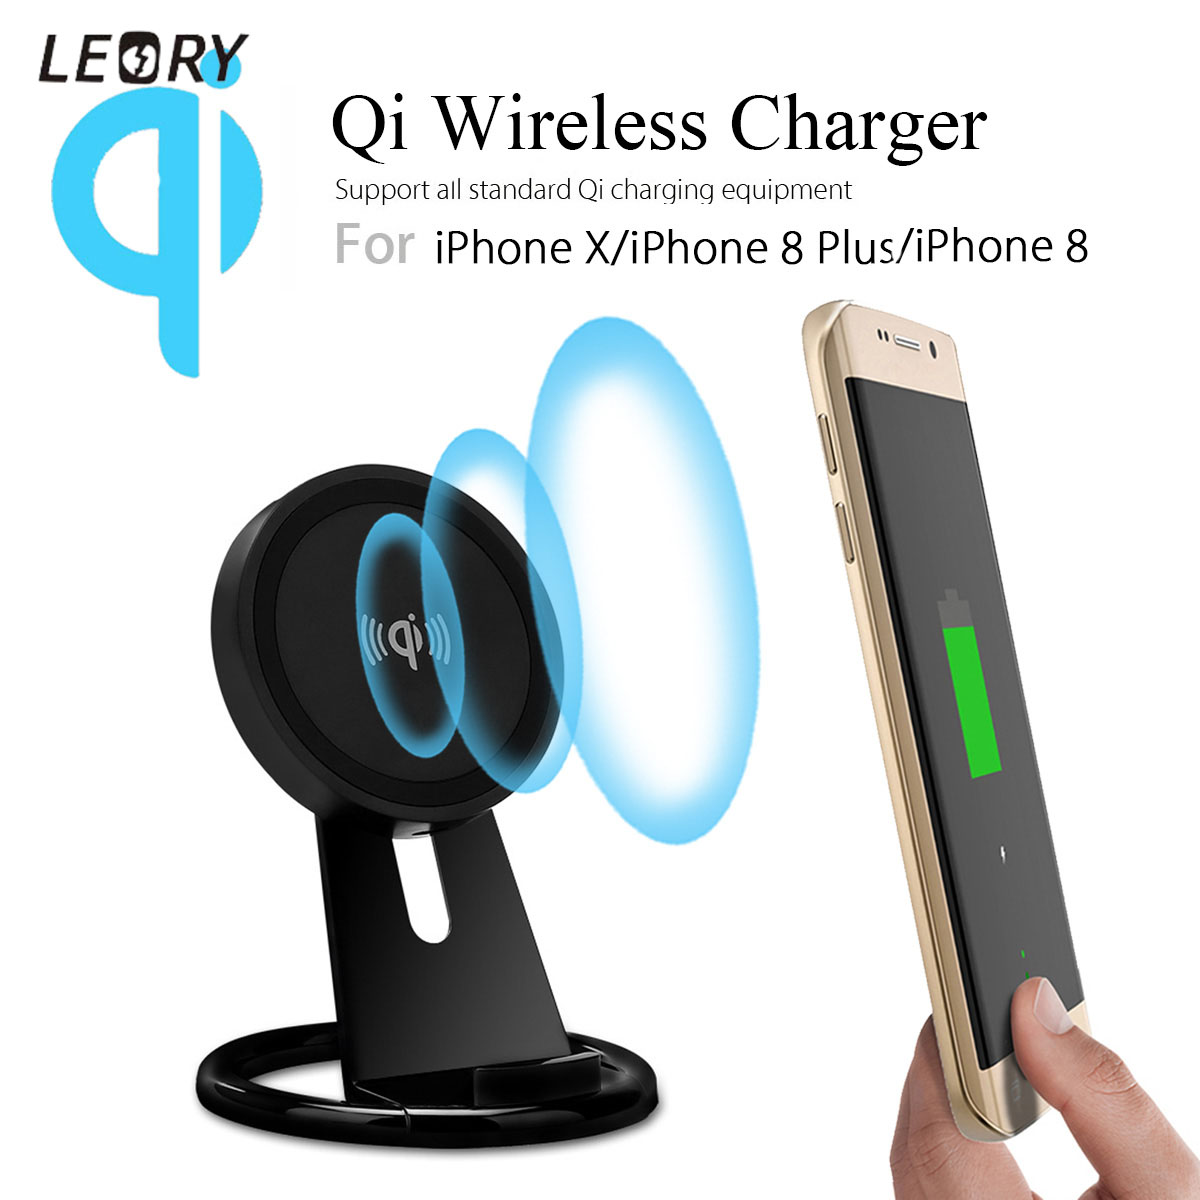 5W Adjustable Desktop Phone Holder Stand Qi Wireless Charger Holder Mount Mobile Phone Charging Pad Up Down with LED Light